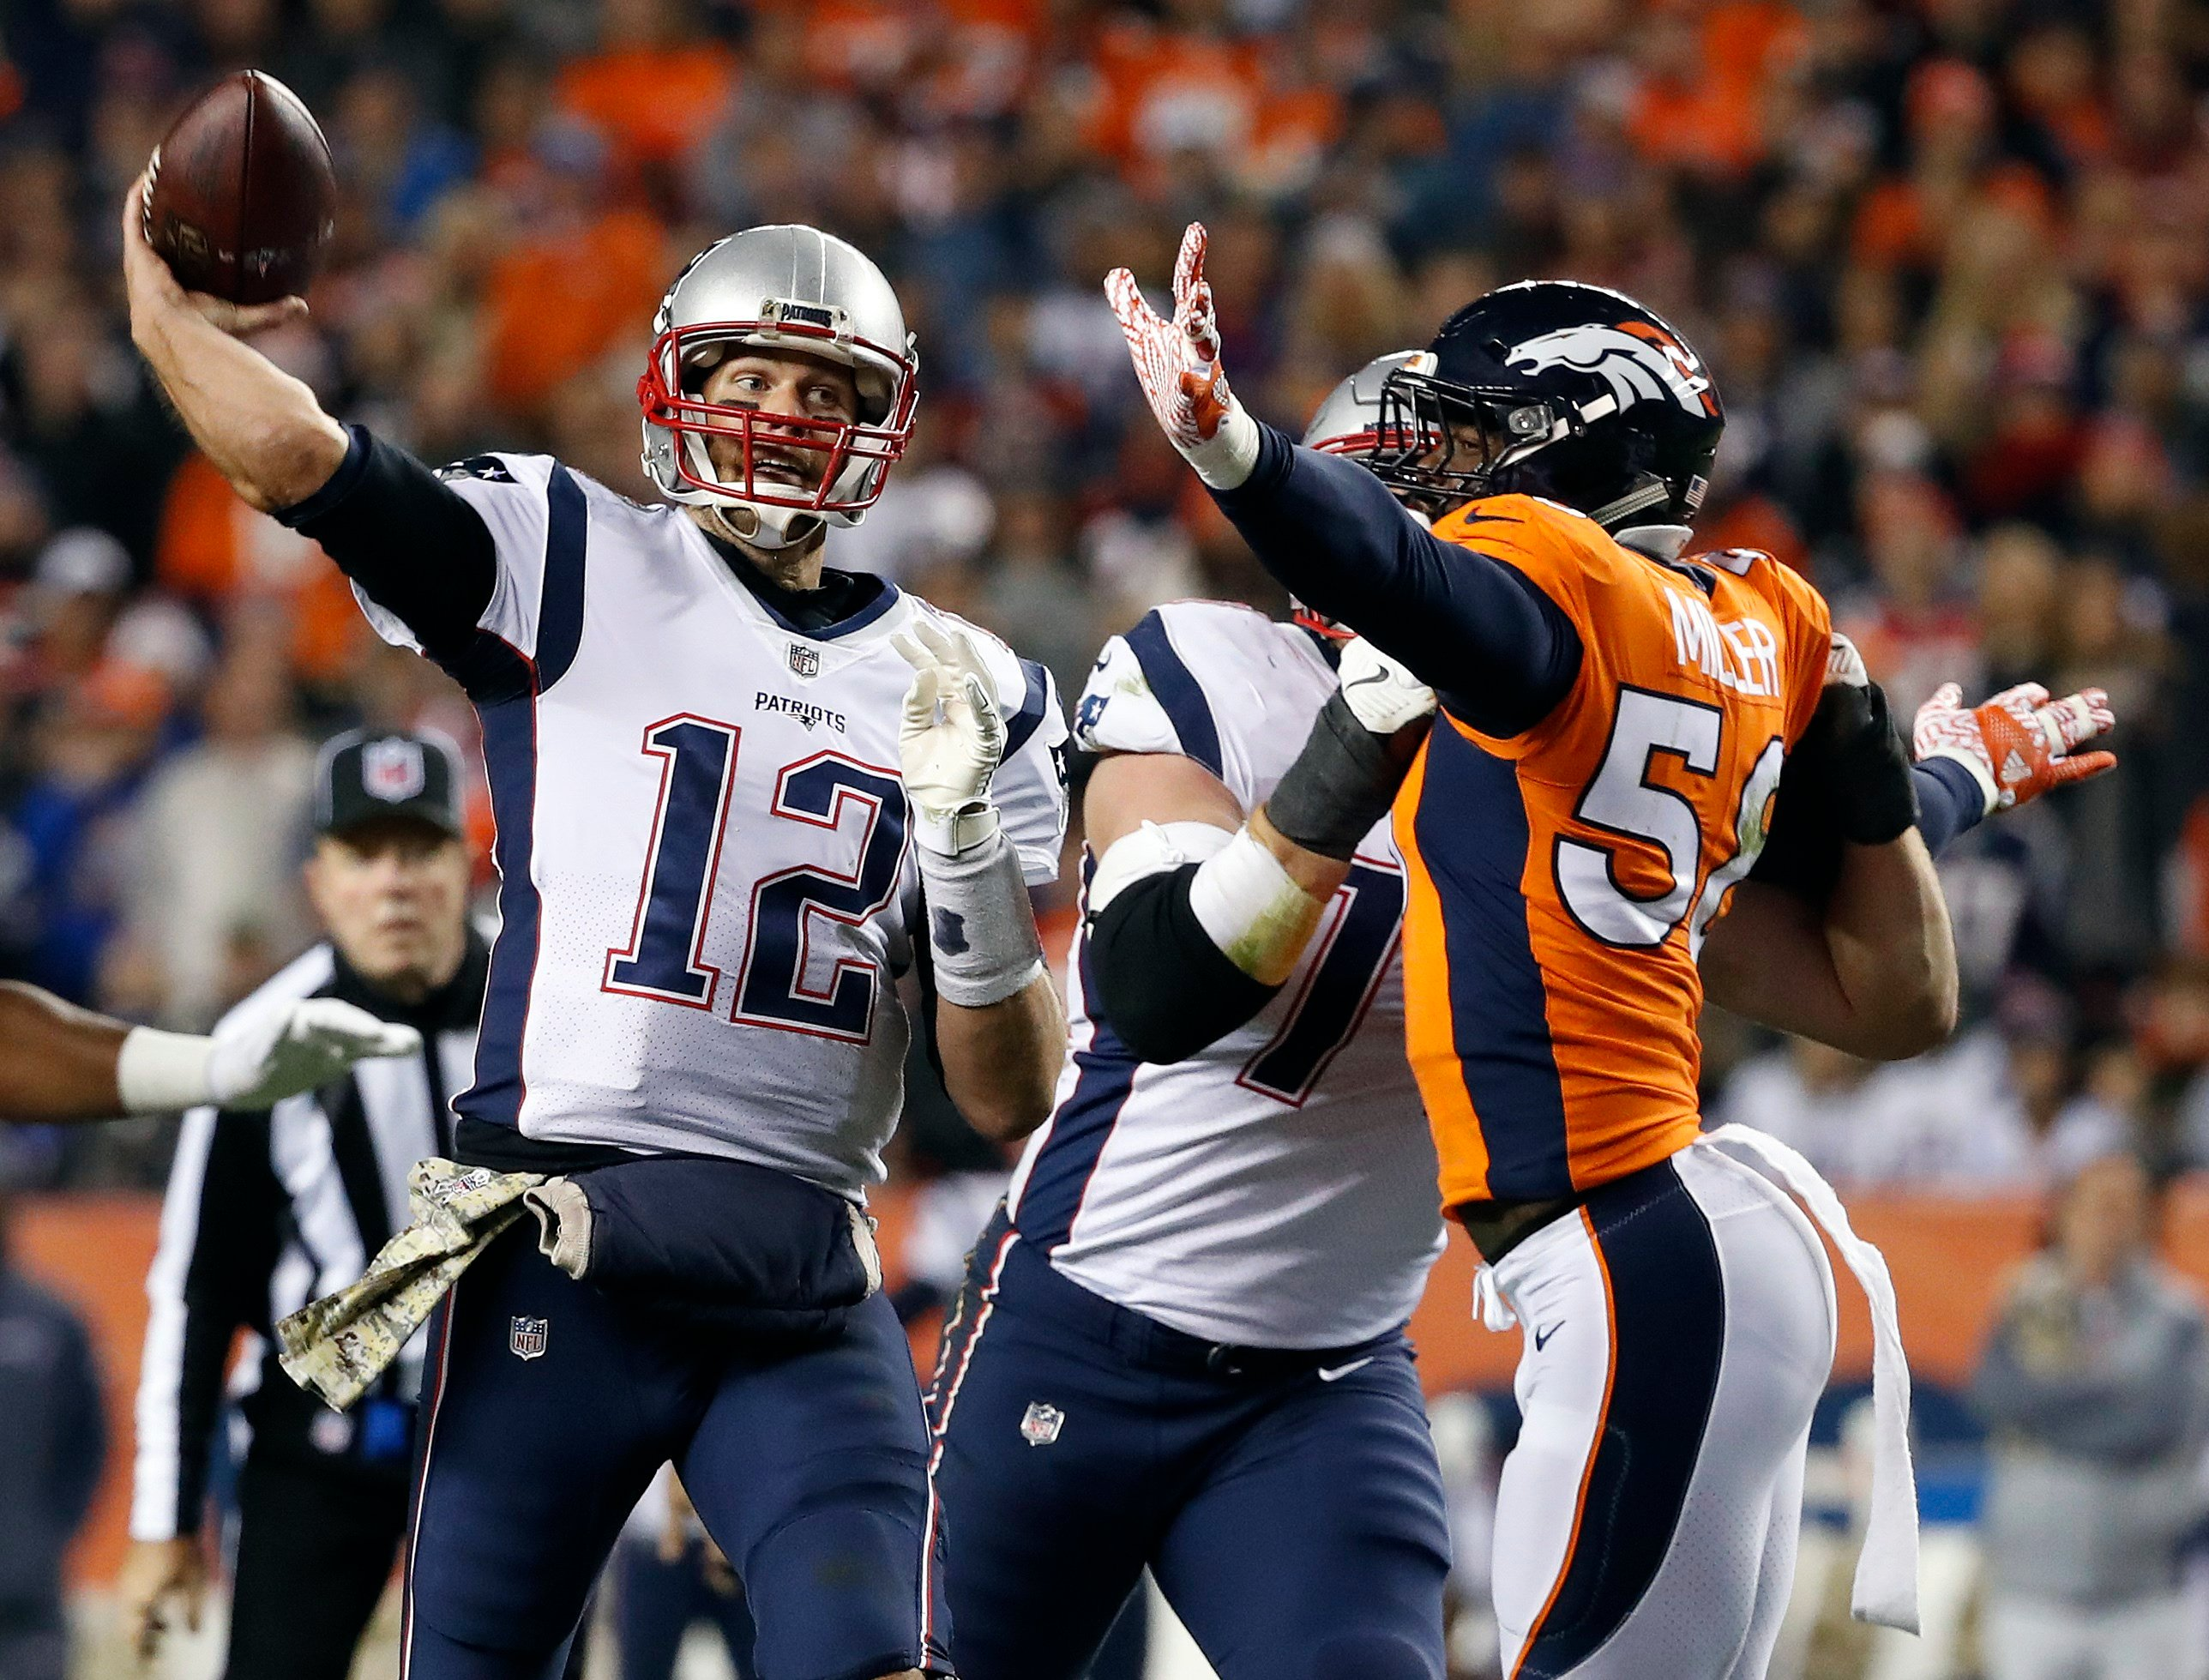 Patriots cruise to 41-16 win over Broncos